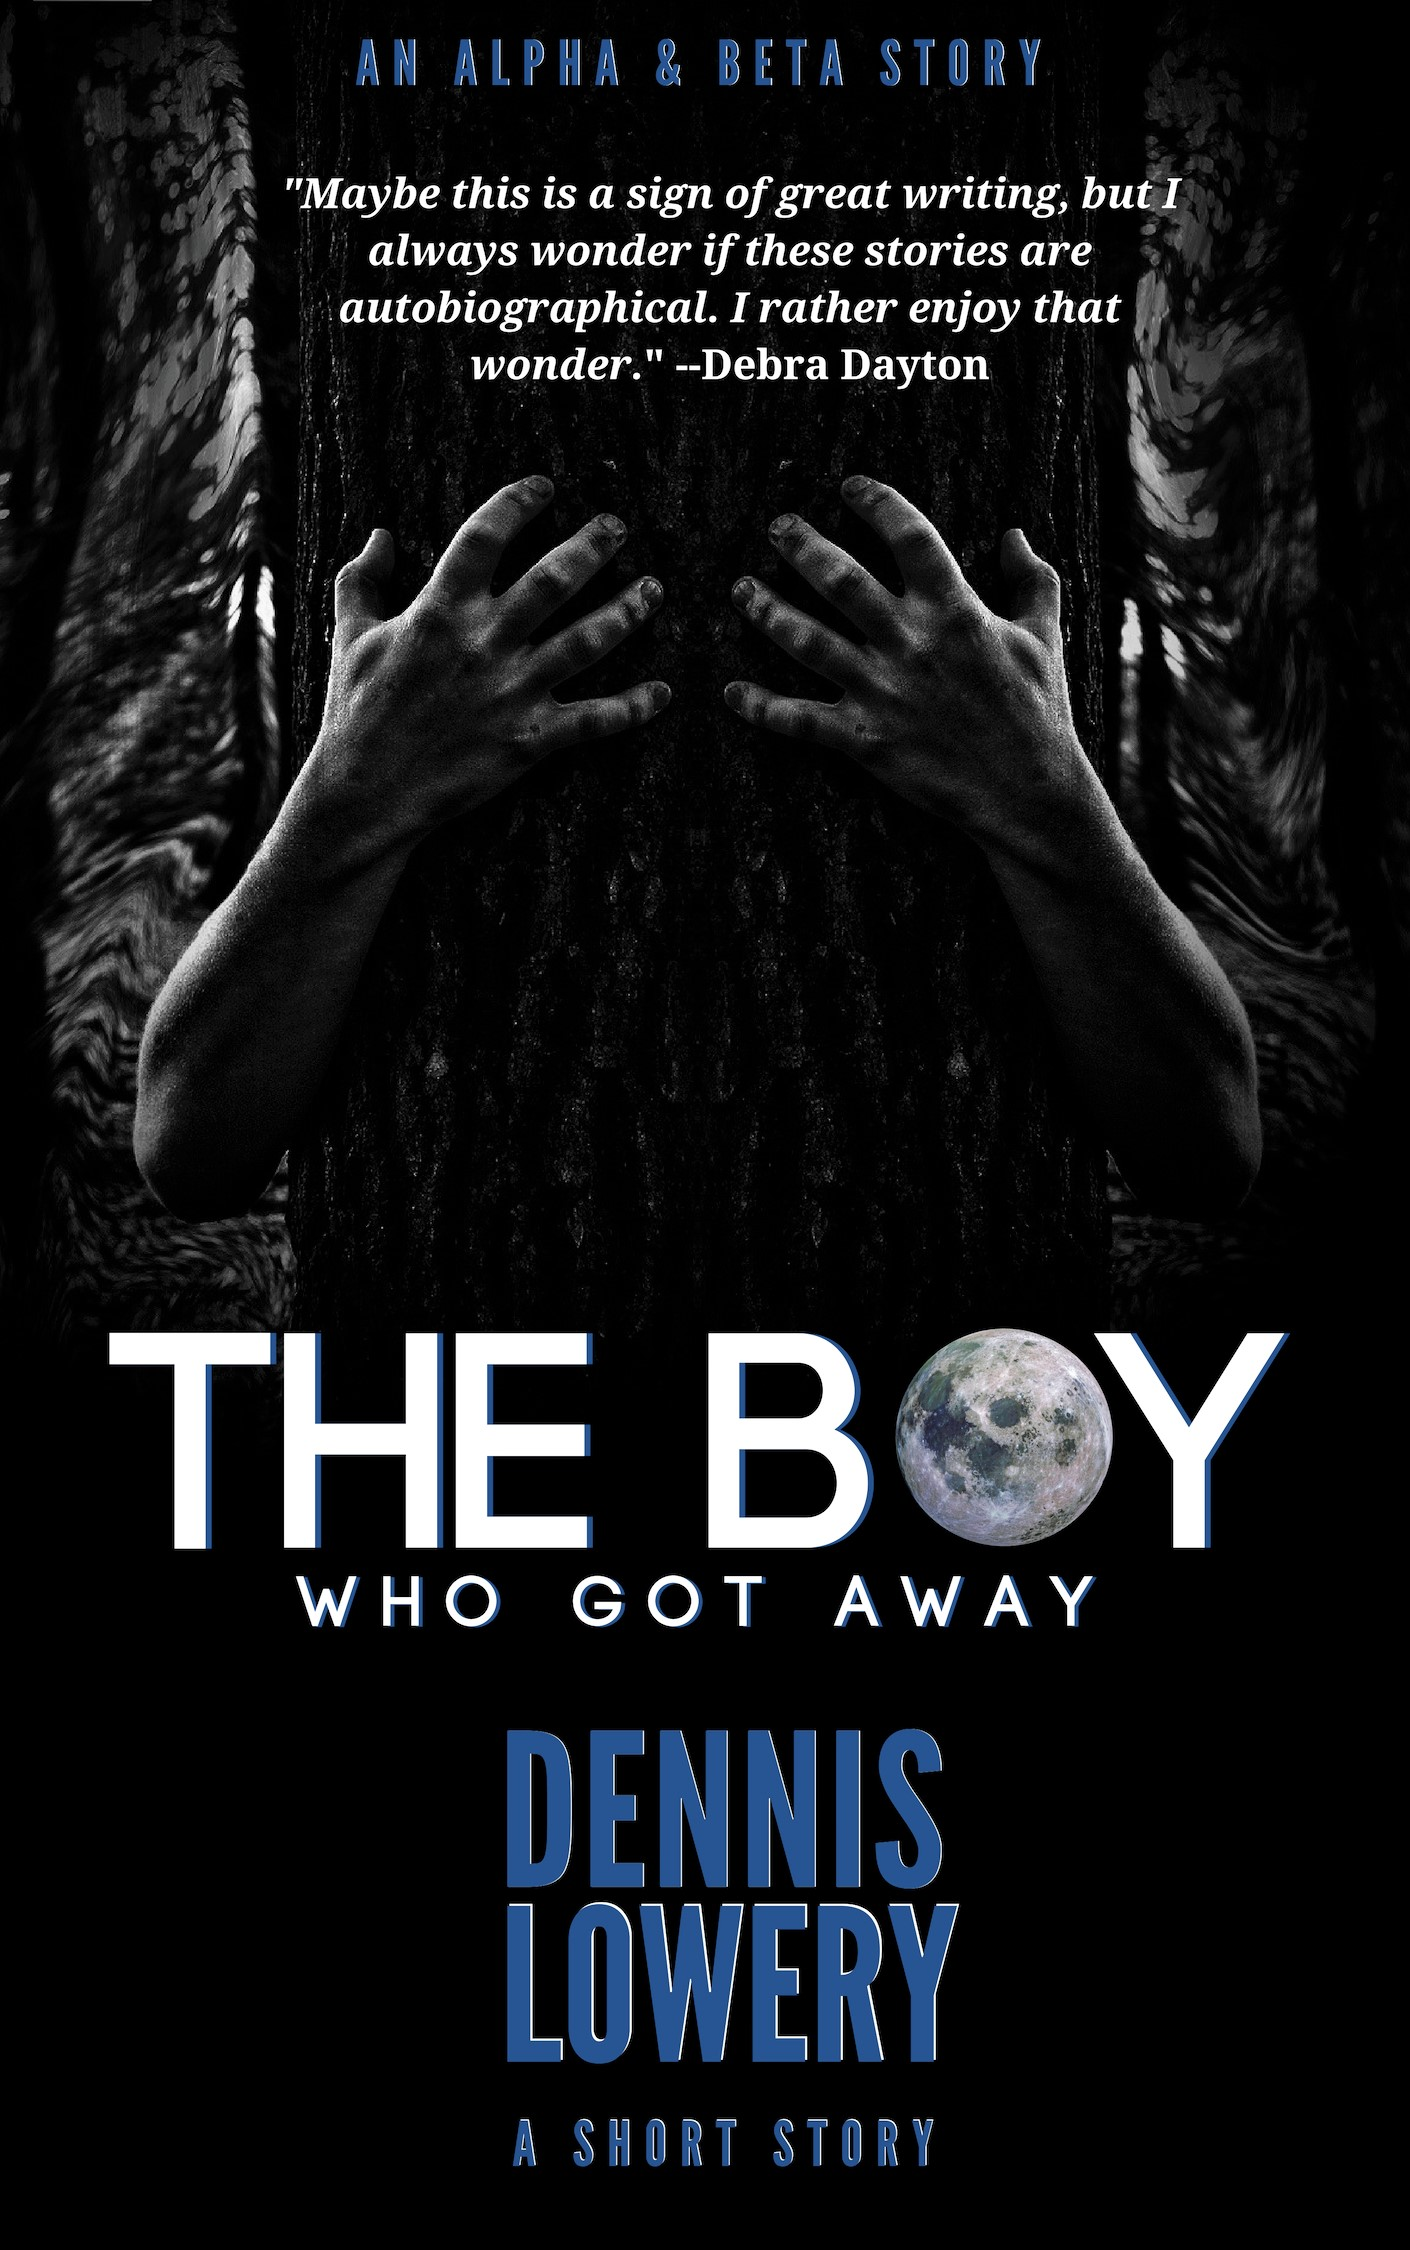 THE BOY WHO GOT AWAY Short Hybrid Story by Dennis Lowery